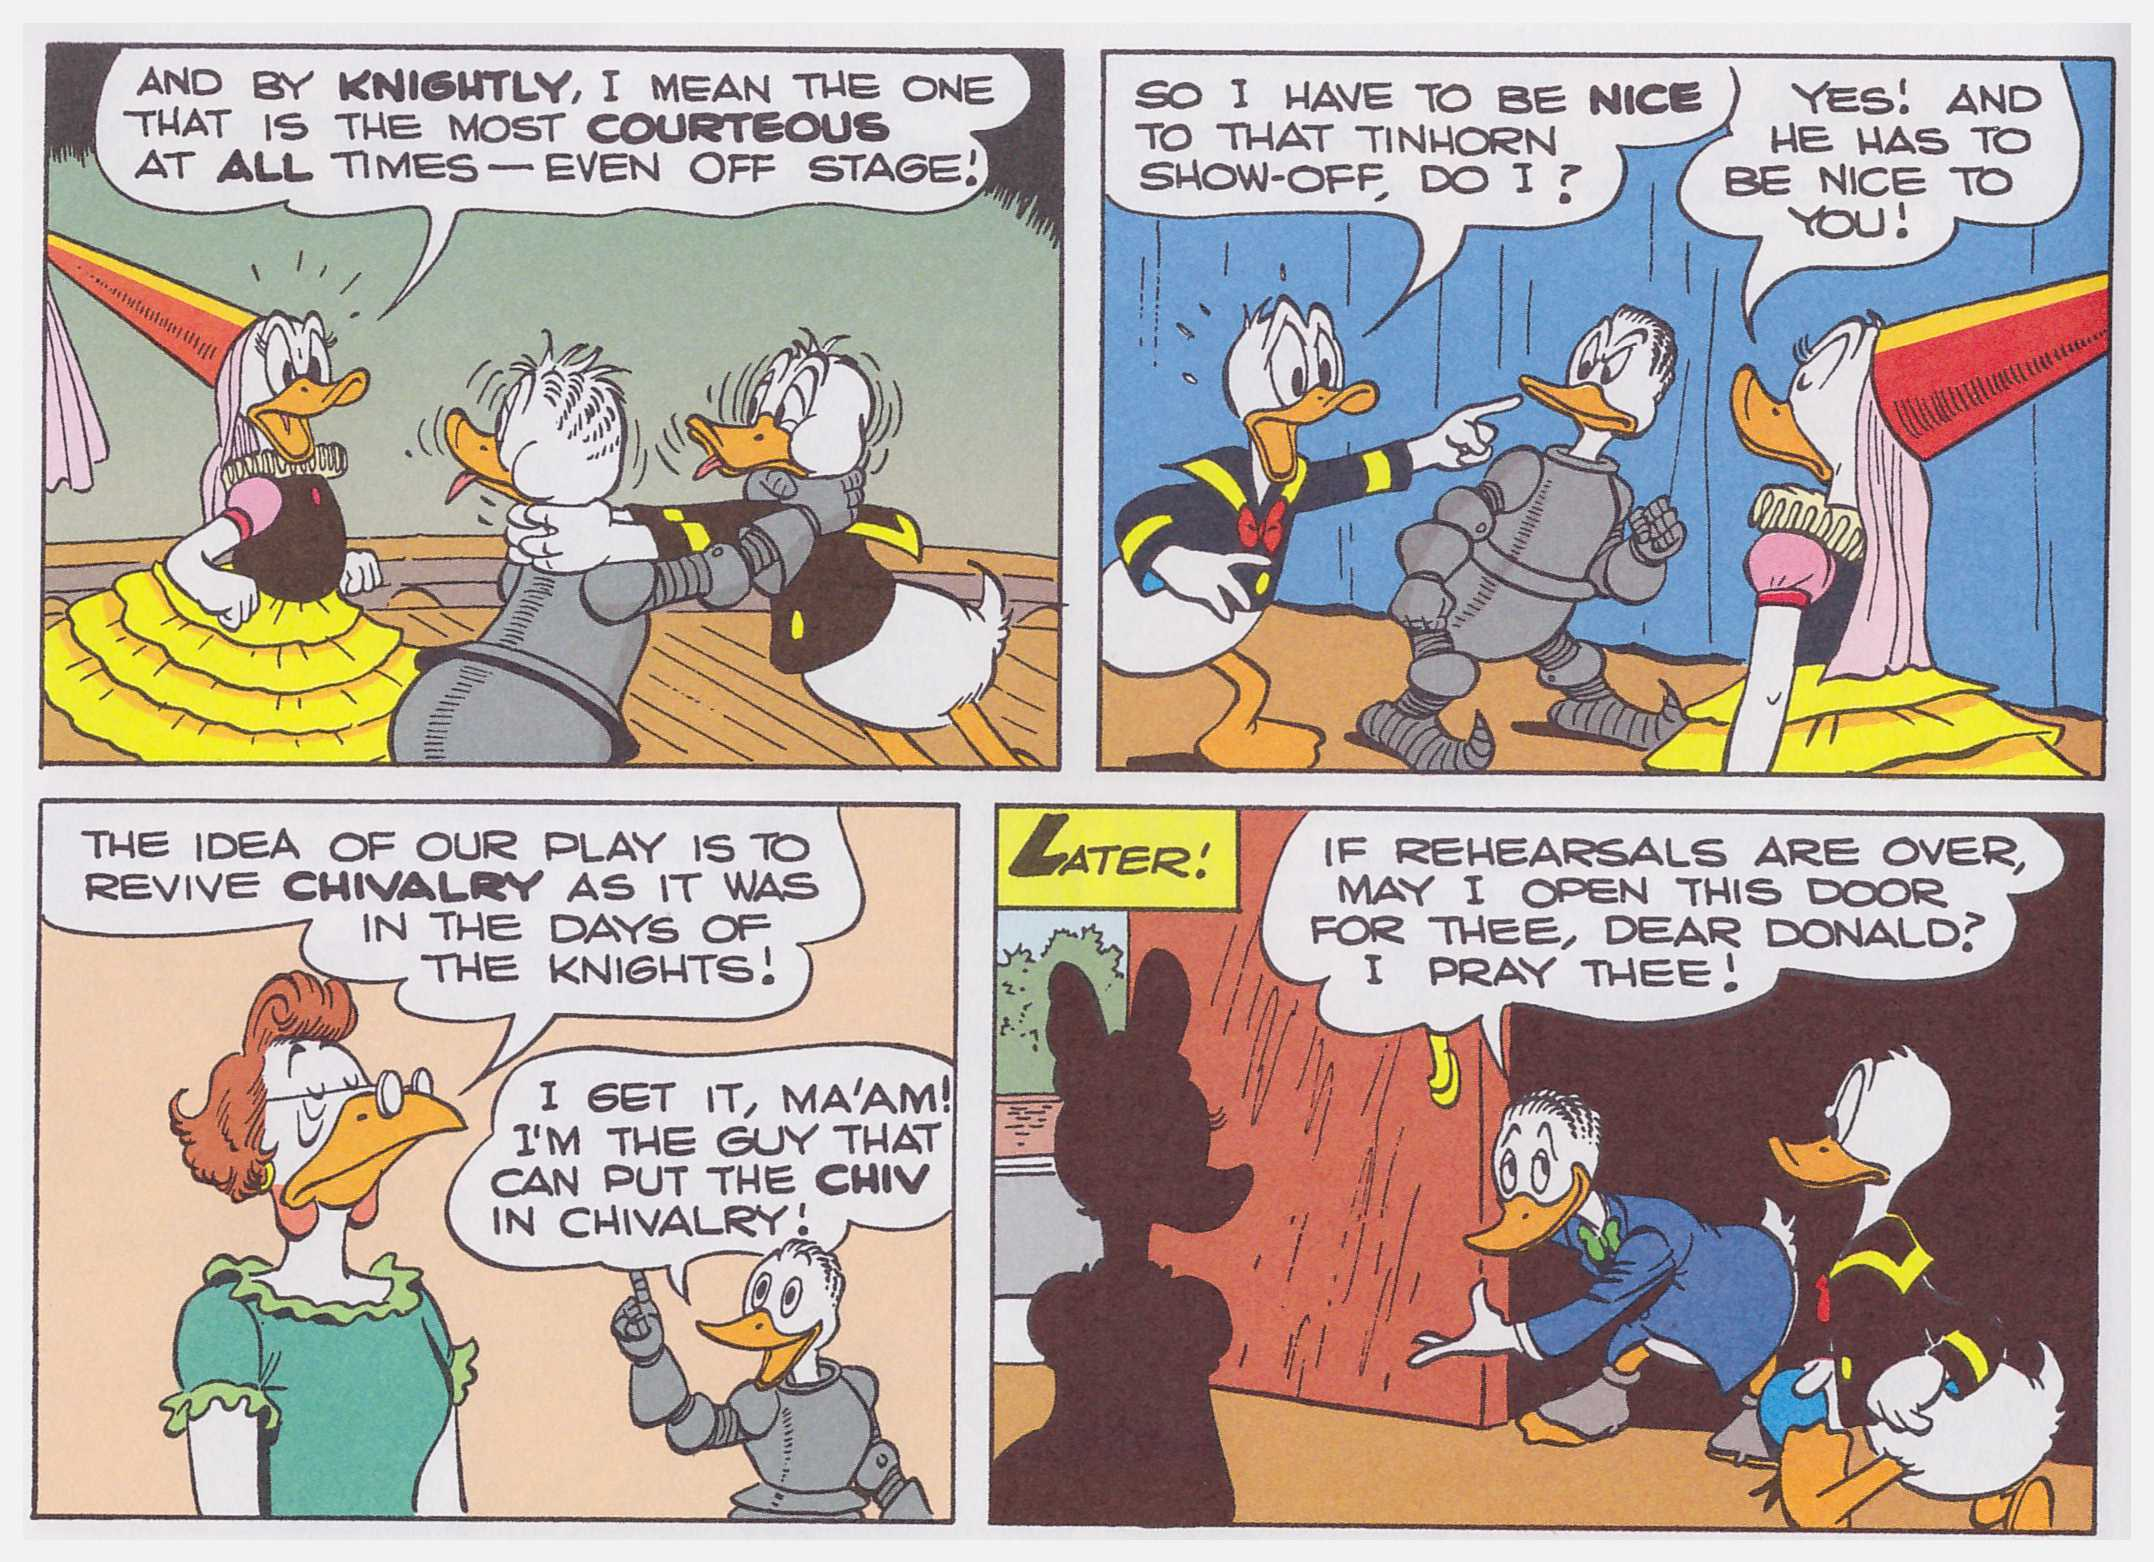 Walt Disney Comics and Stories by Carl Barks vol 18 review